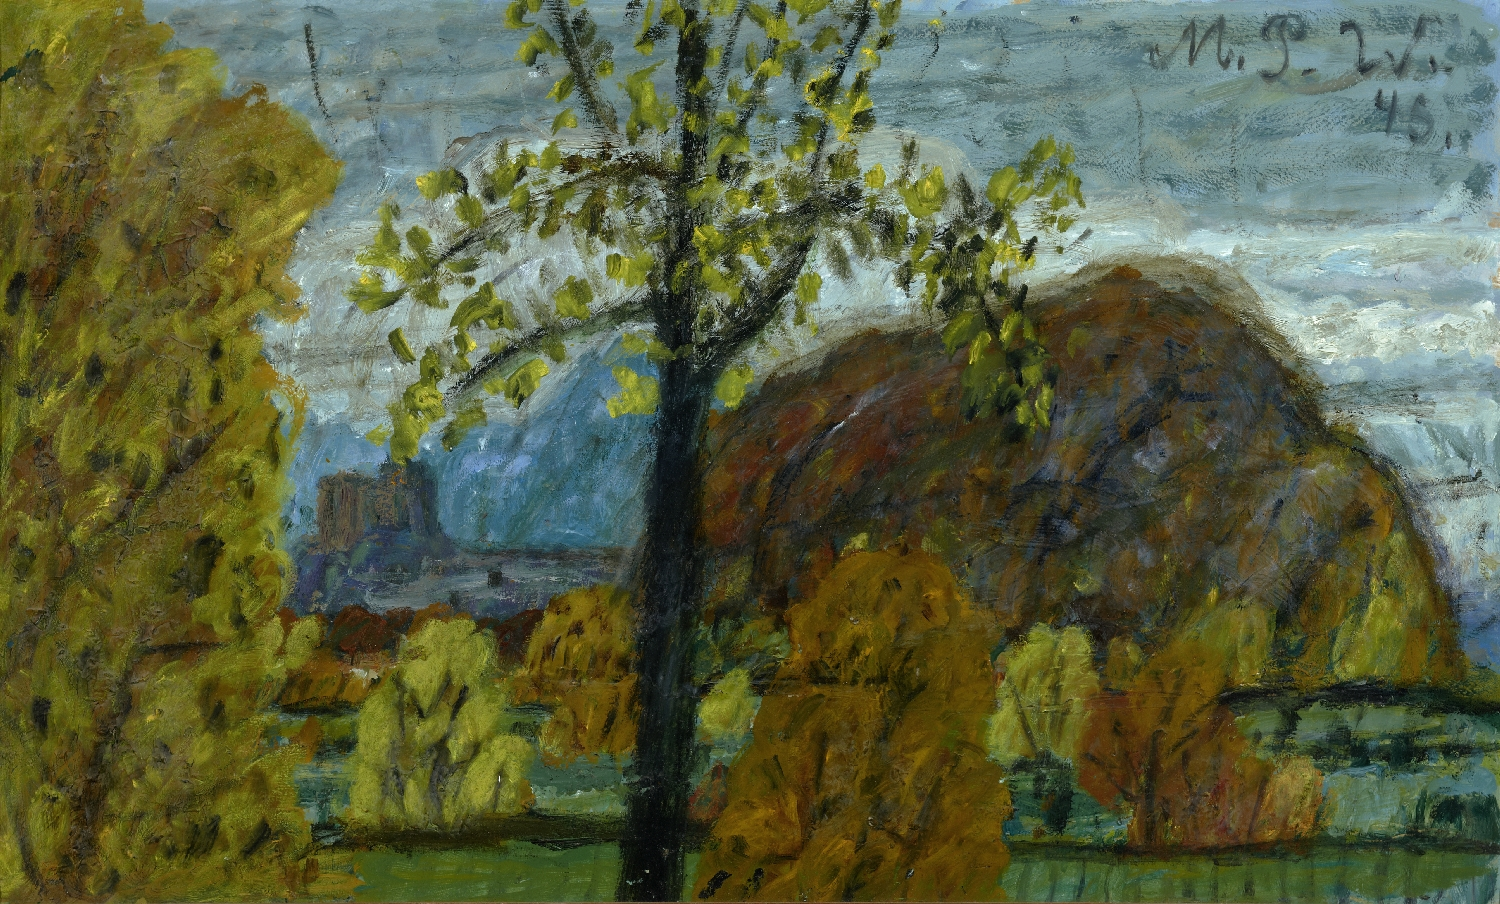 View from Parsch onto Fortress and Kapuzinerberg, Max Peiffer Watenphul, 1945, inv. no. 1067-93